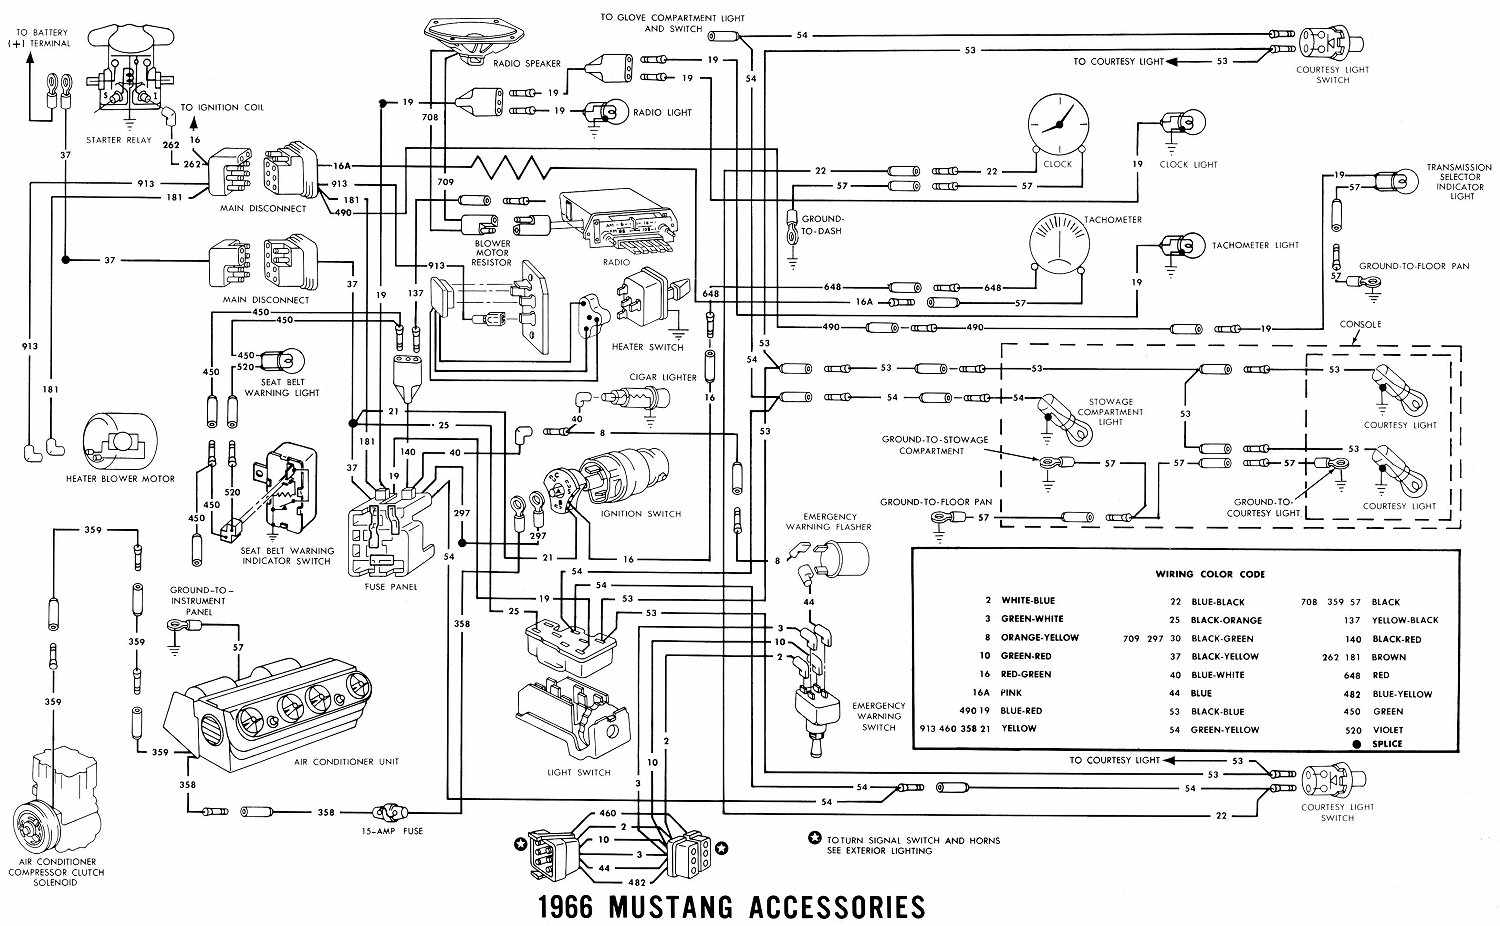 V Manual 1966 Ford Mustang Accessories Electrical Wiring Diagrams Vespa Vba Diagram